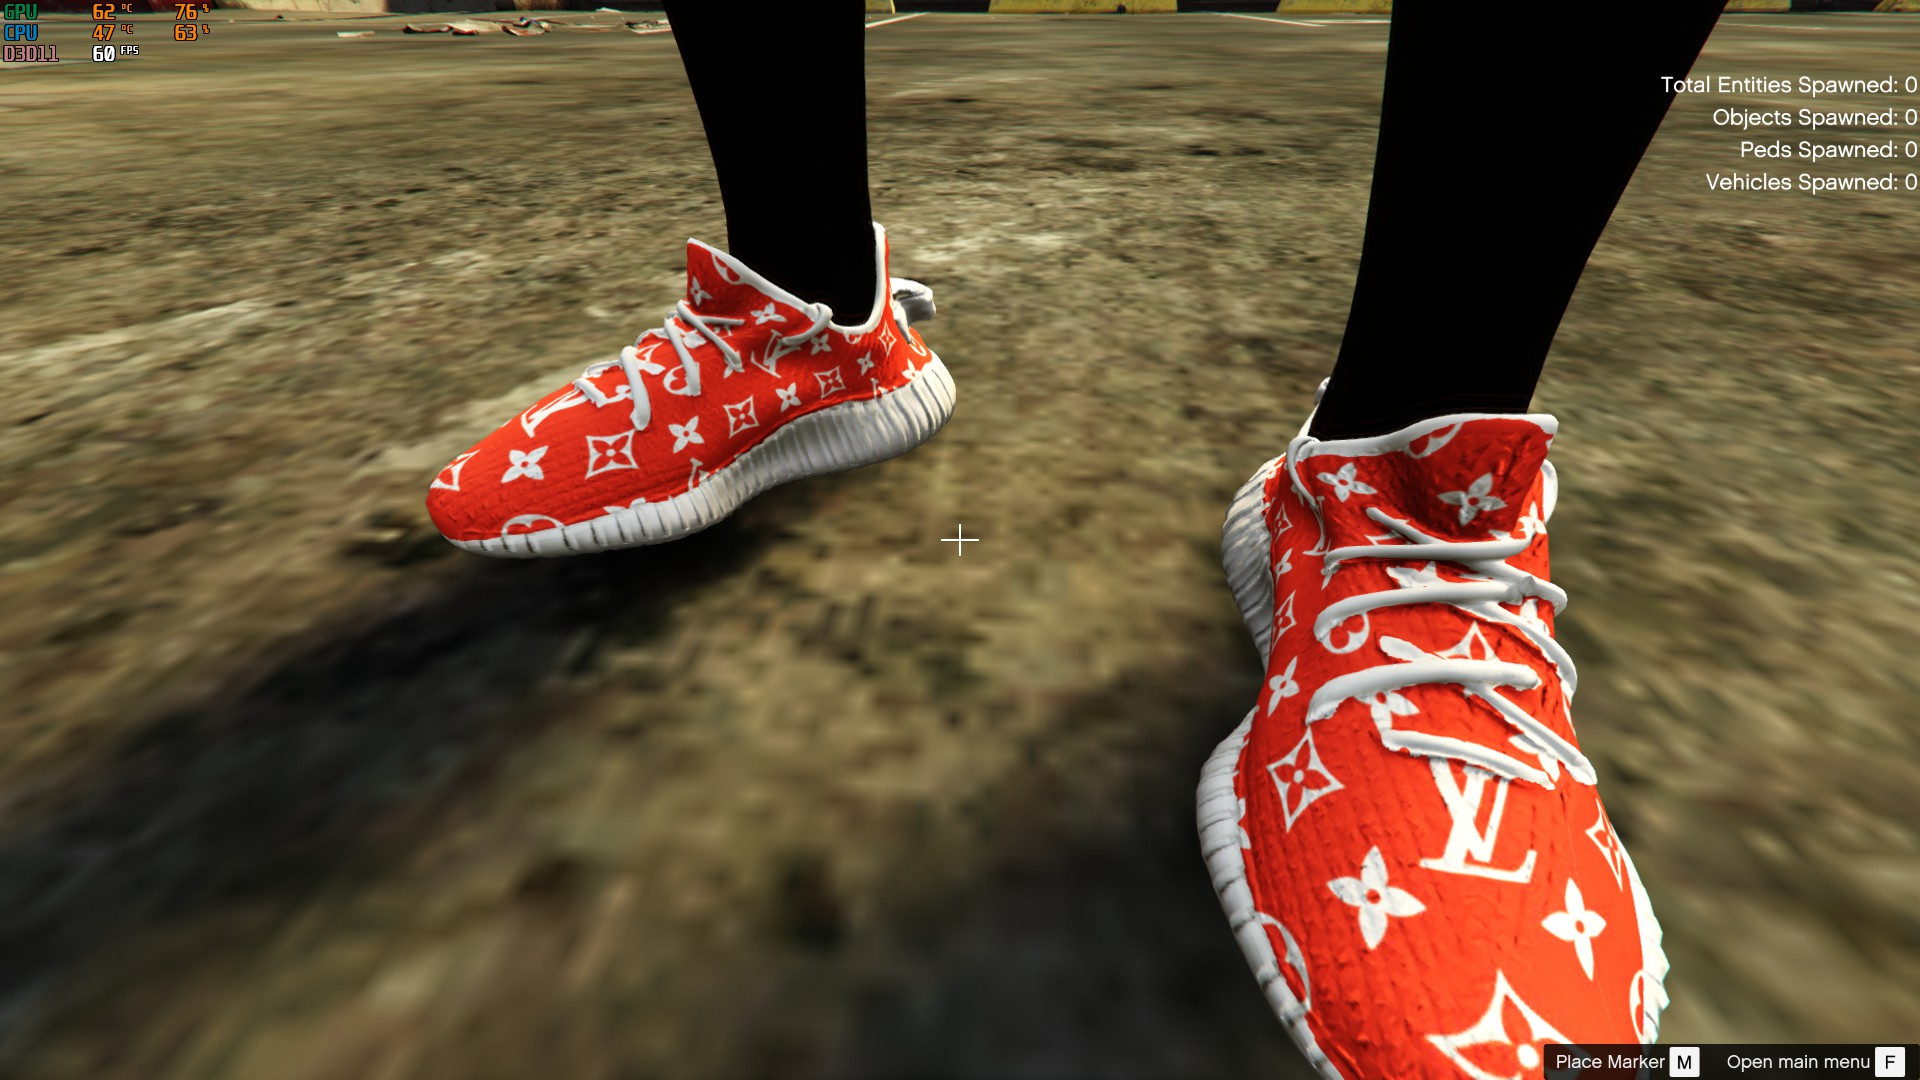 Louis Vuitton X Supreme Yeezy - GTA5-Mods Com